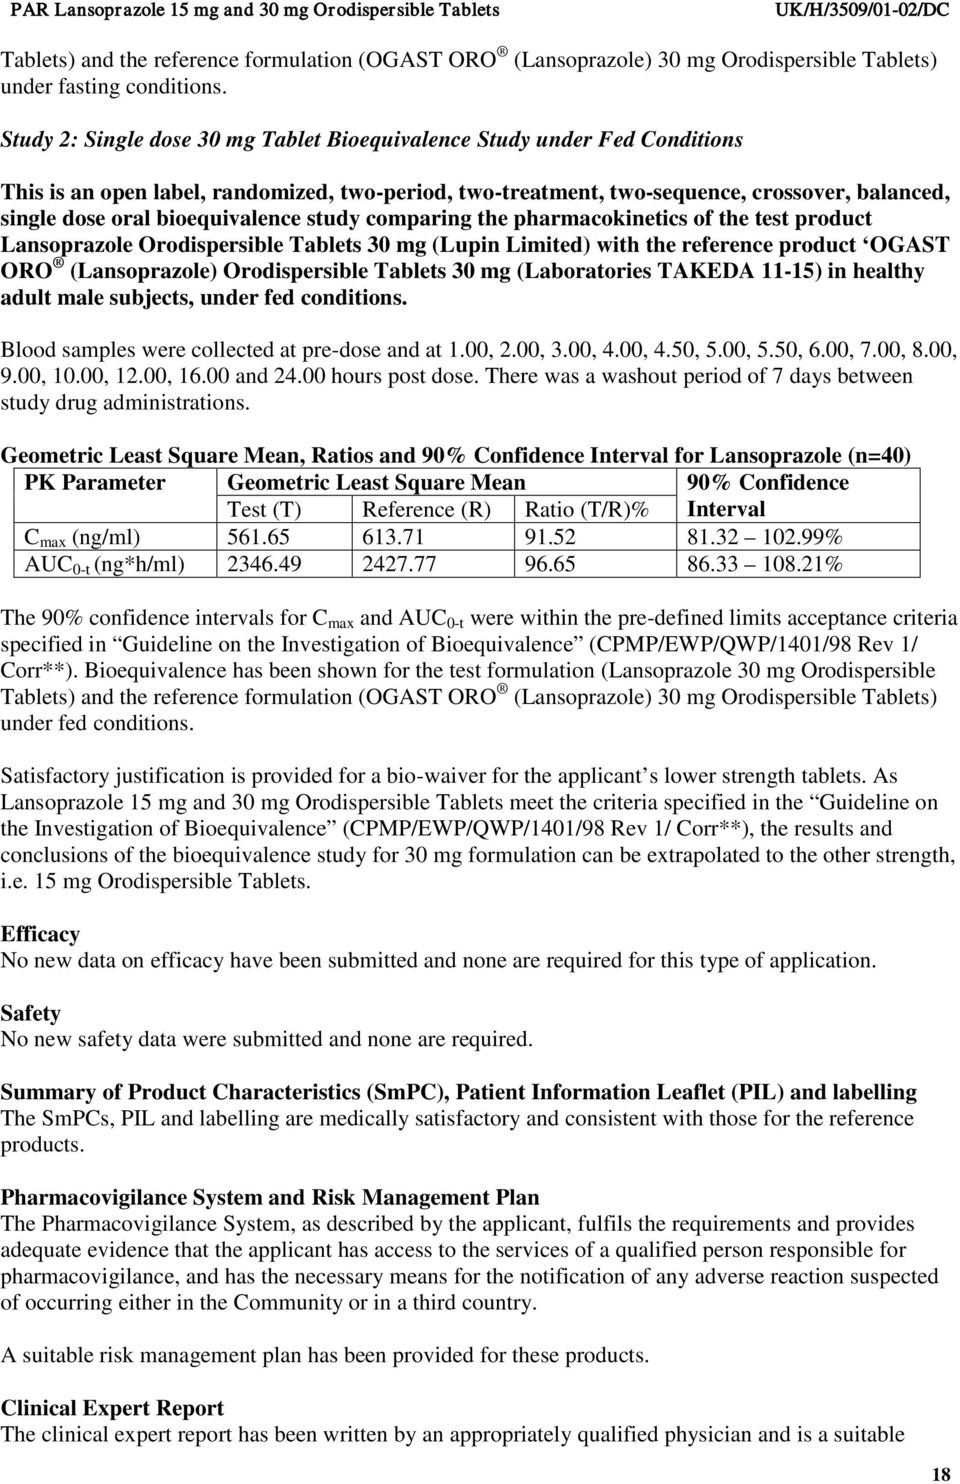 bioequivalence study comparing the pharmacokinetics of the test product Lansoprazole Orodispersible Tablets 30 mg (Lupin Limited) with the reference product OGAST ORO (Lansoprazole) Orodispersible